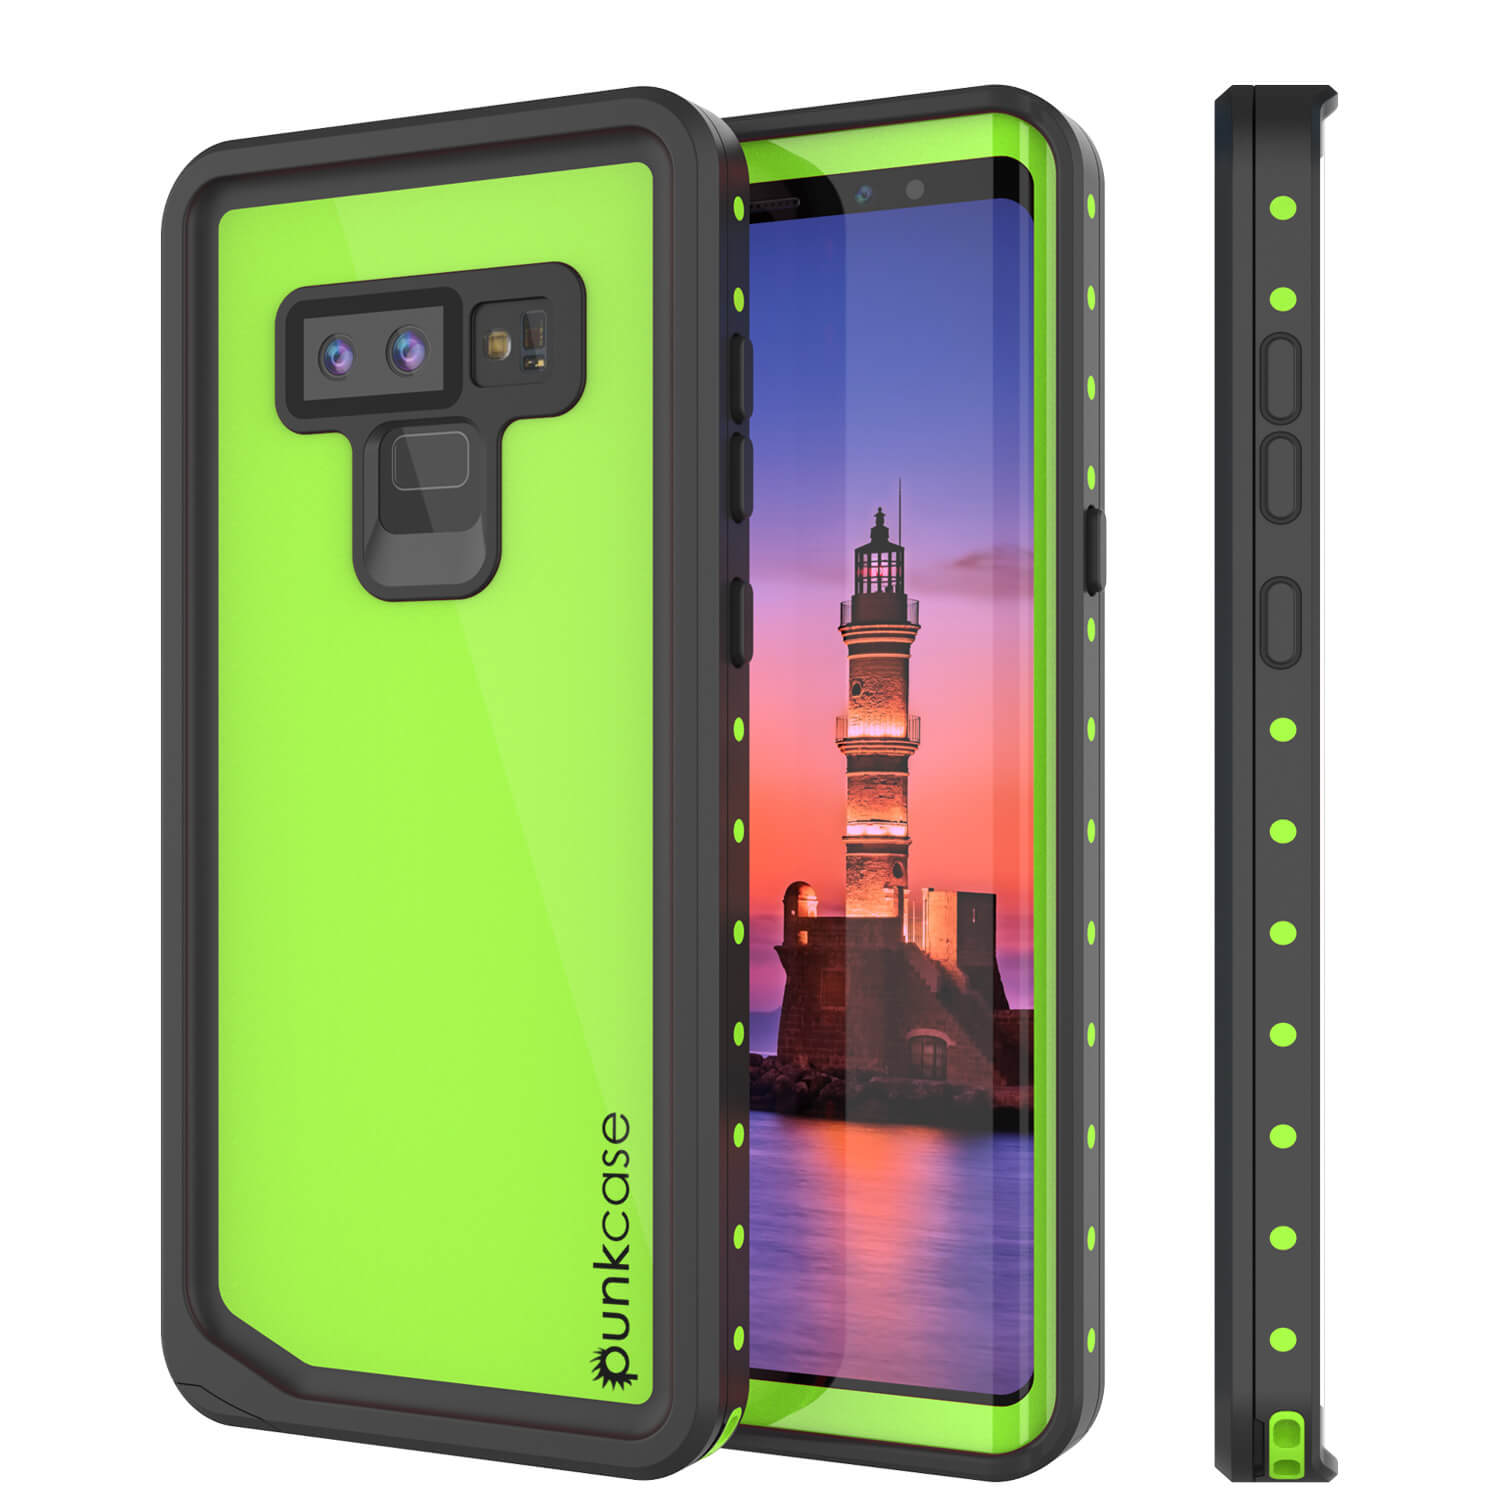 Galaxy Note 9 Waterproof Case, Punkcase Studstar Light Green Thin Armor Cover